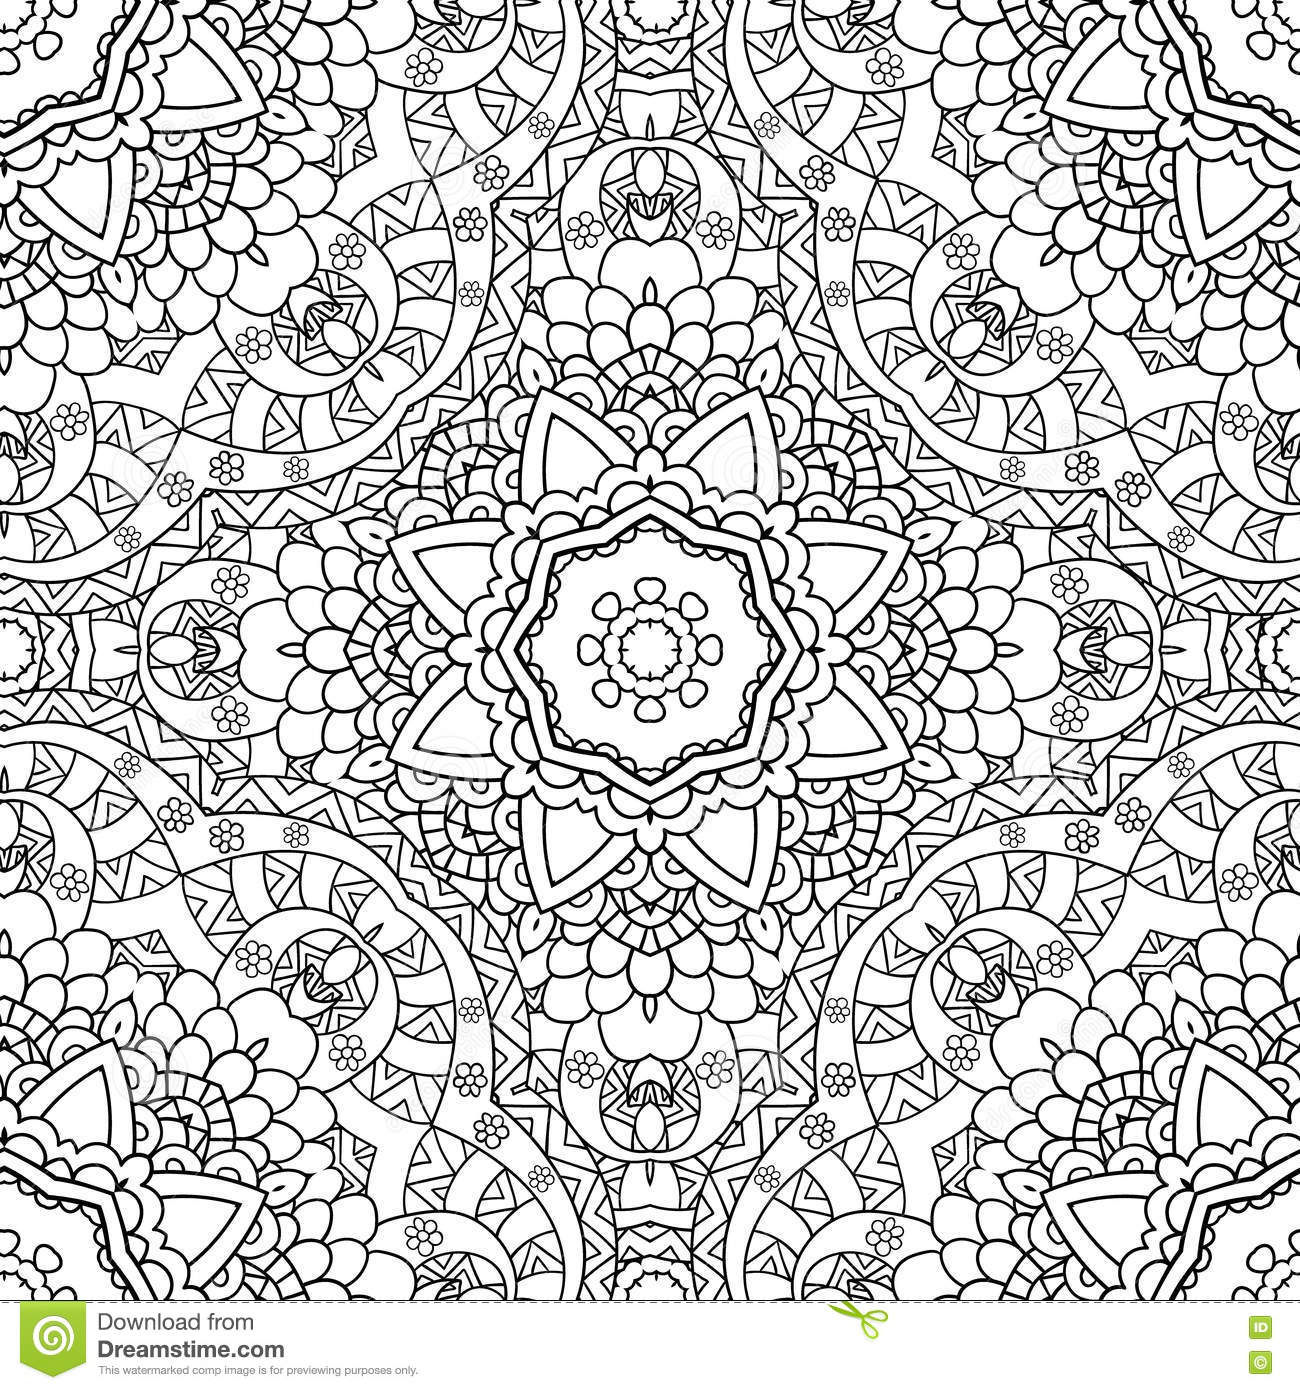 coloring pages for adults patterns Coloring Pages For Adults.Decorative Hand Drawn Doodle Nature  coloring pages for adults patterns